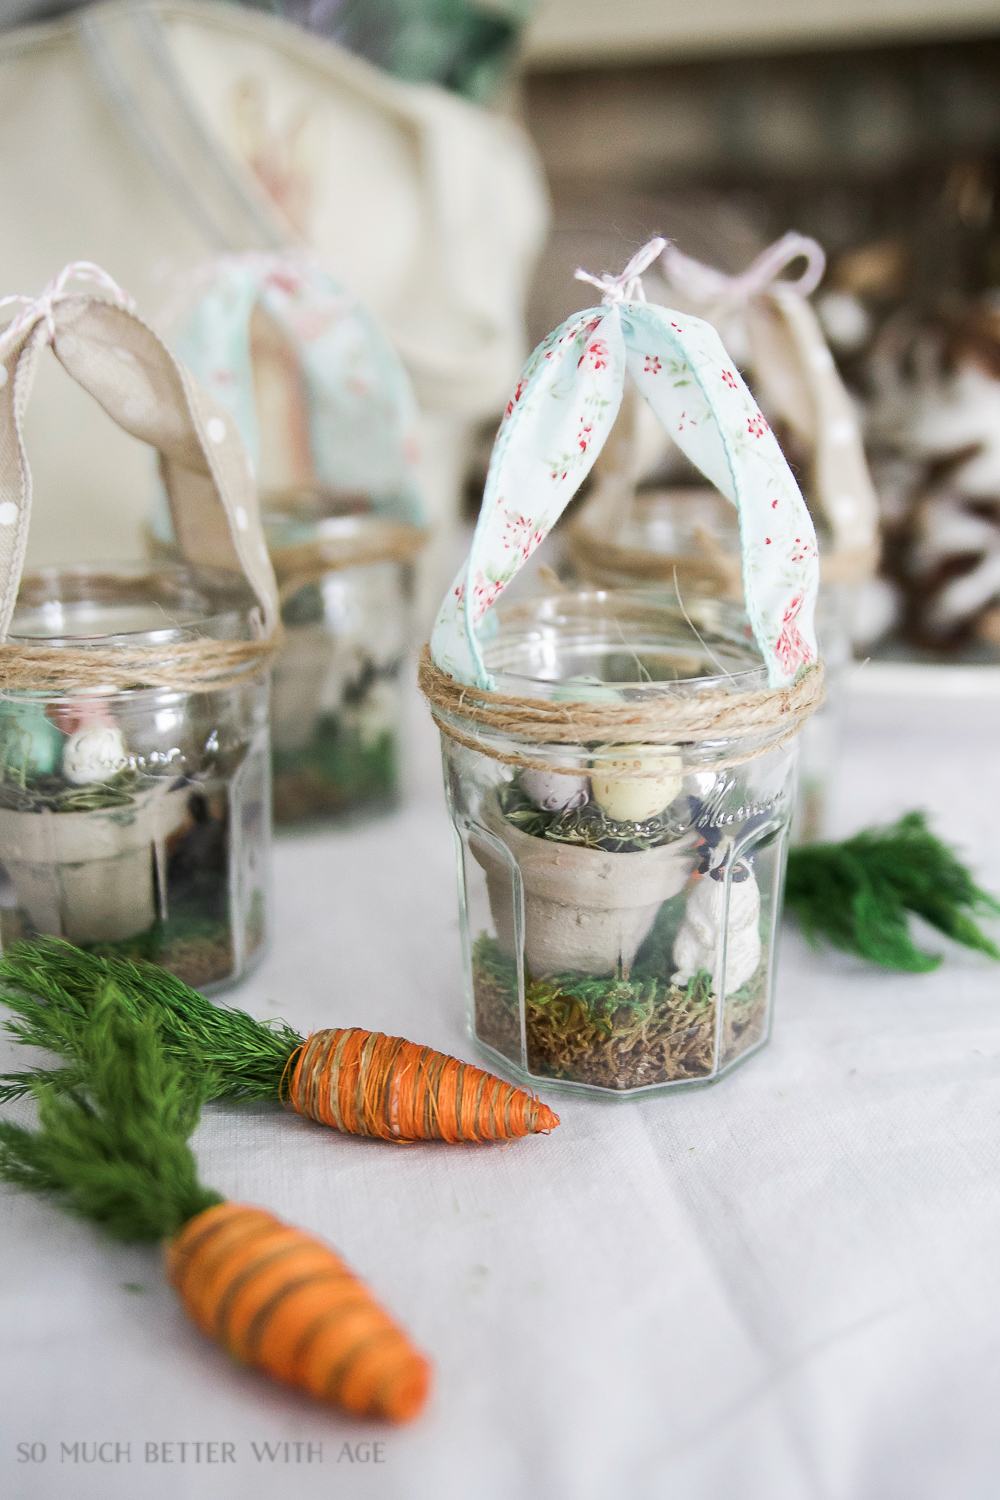 Glass Easter Jars with Bunny Ears / jar with fake carrot on table - So Much Better With Age